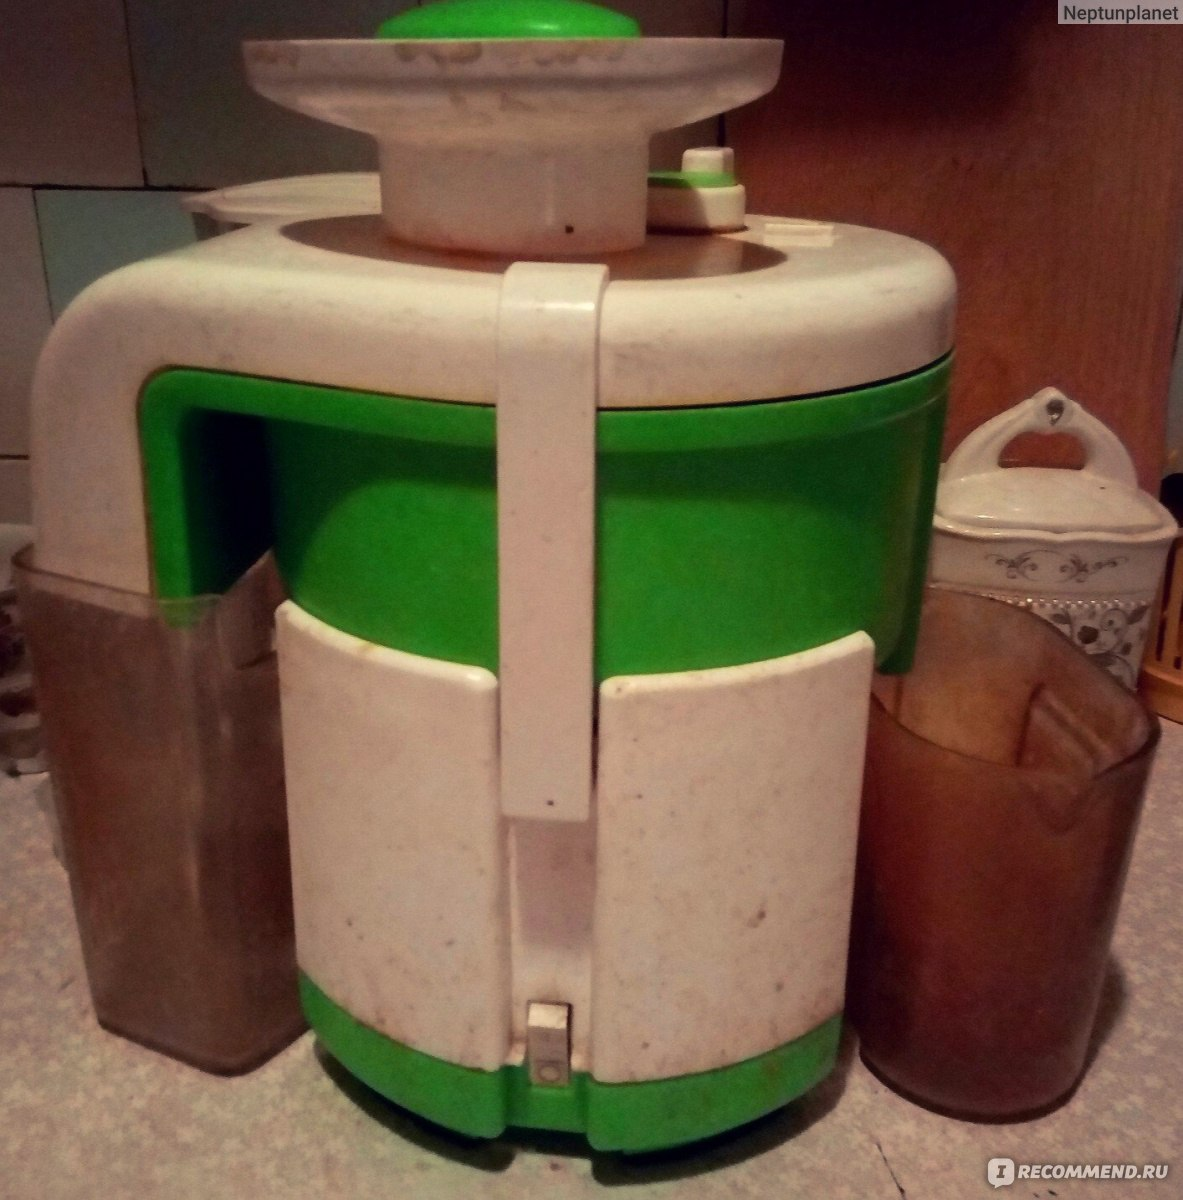 Zhuravinka - a juicer from Belarus recommended by hostesses 45